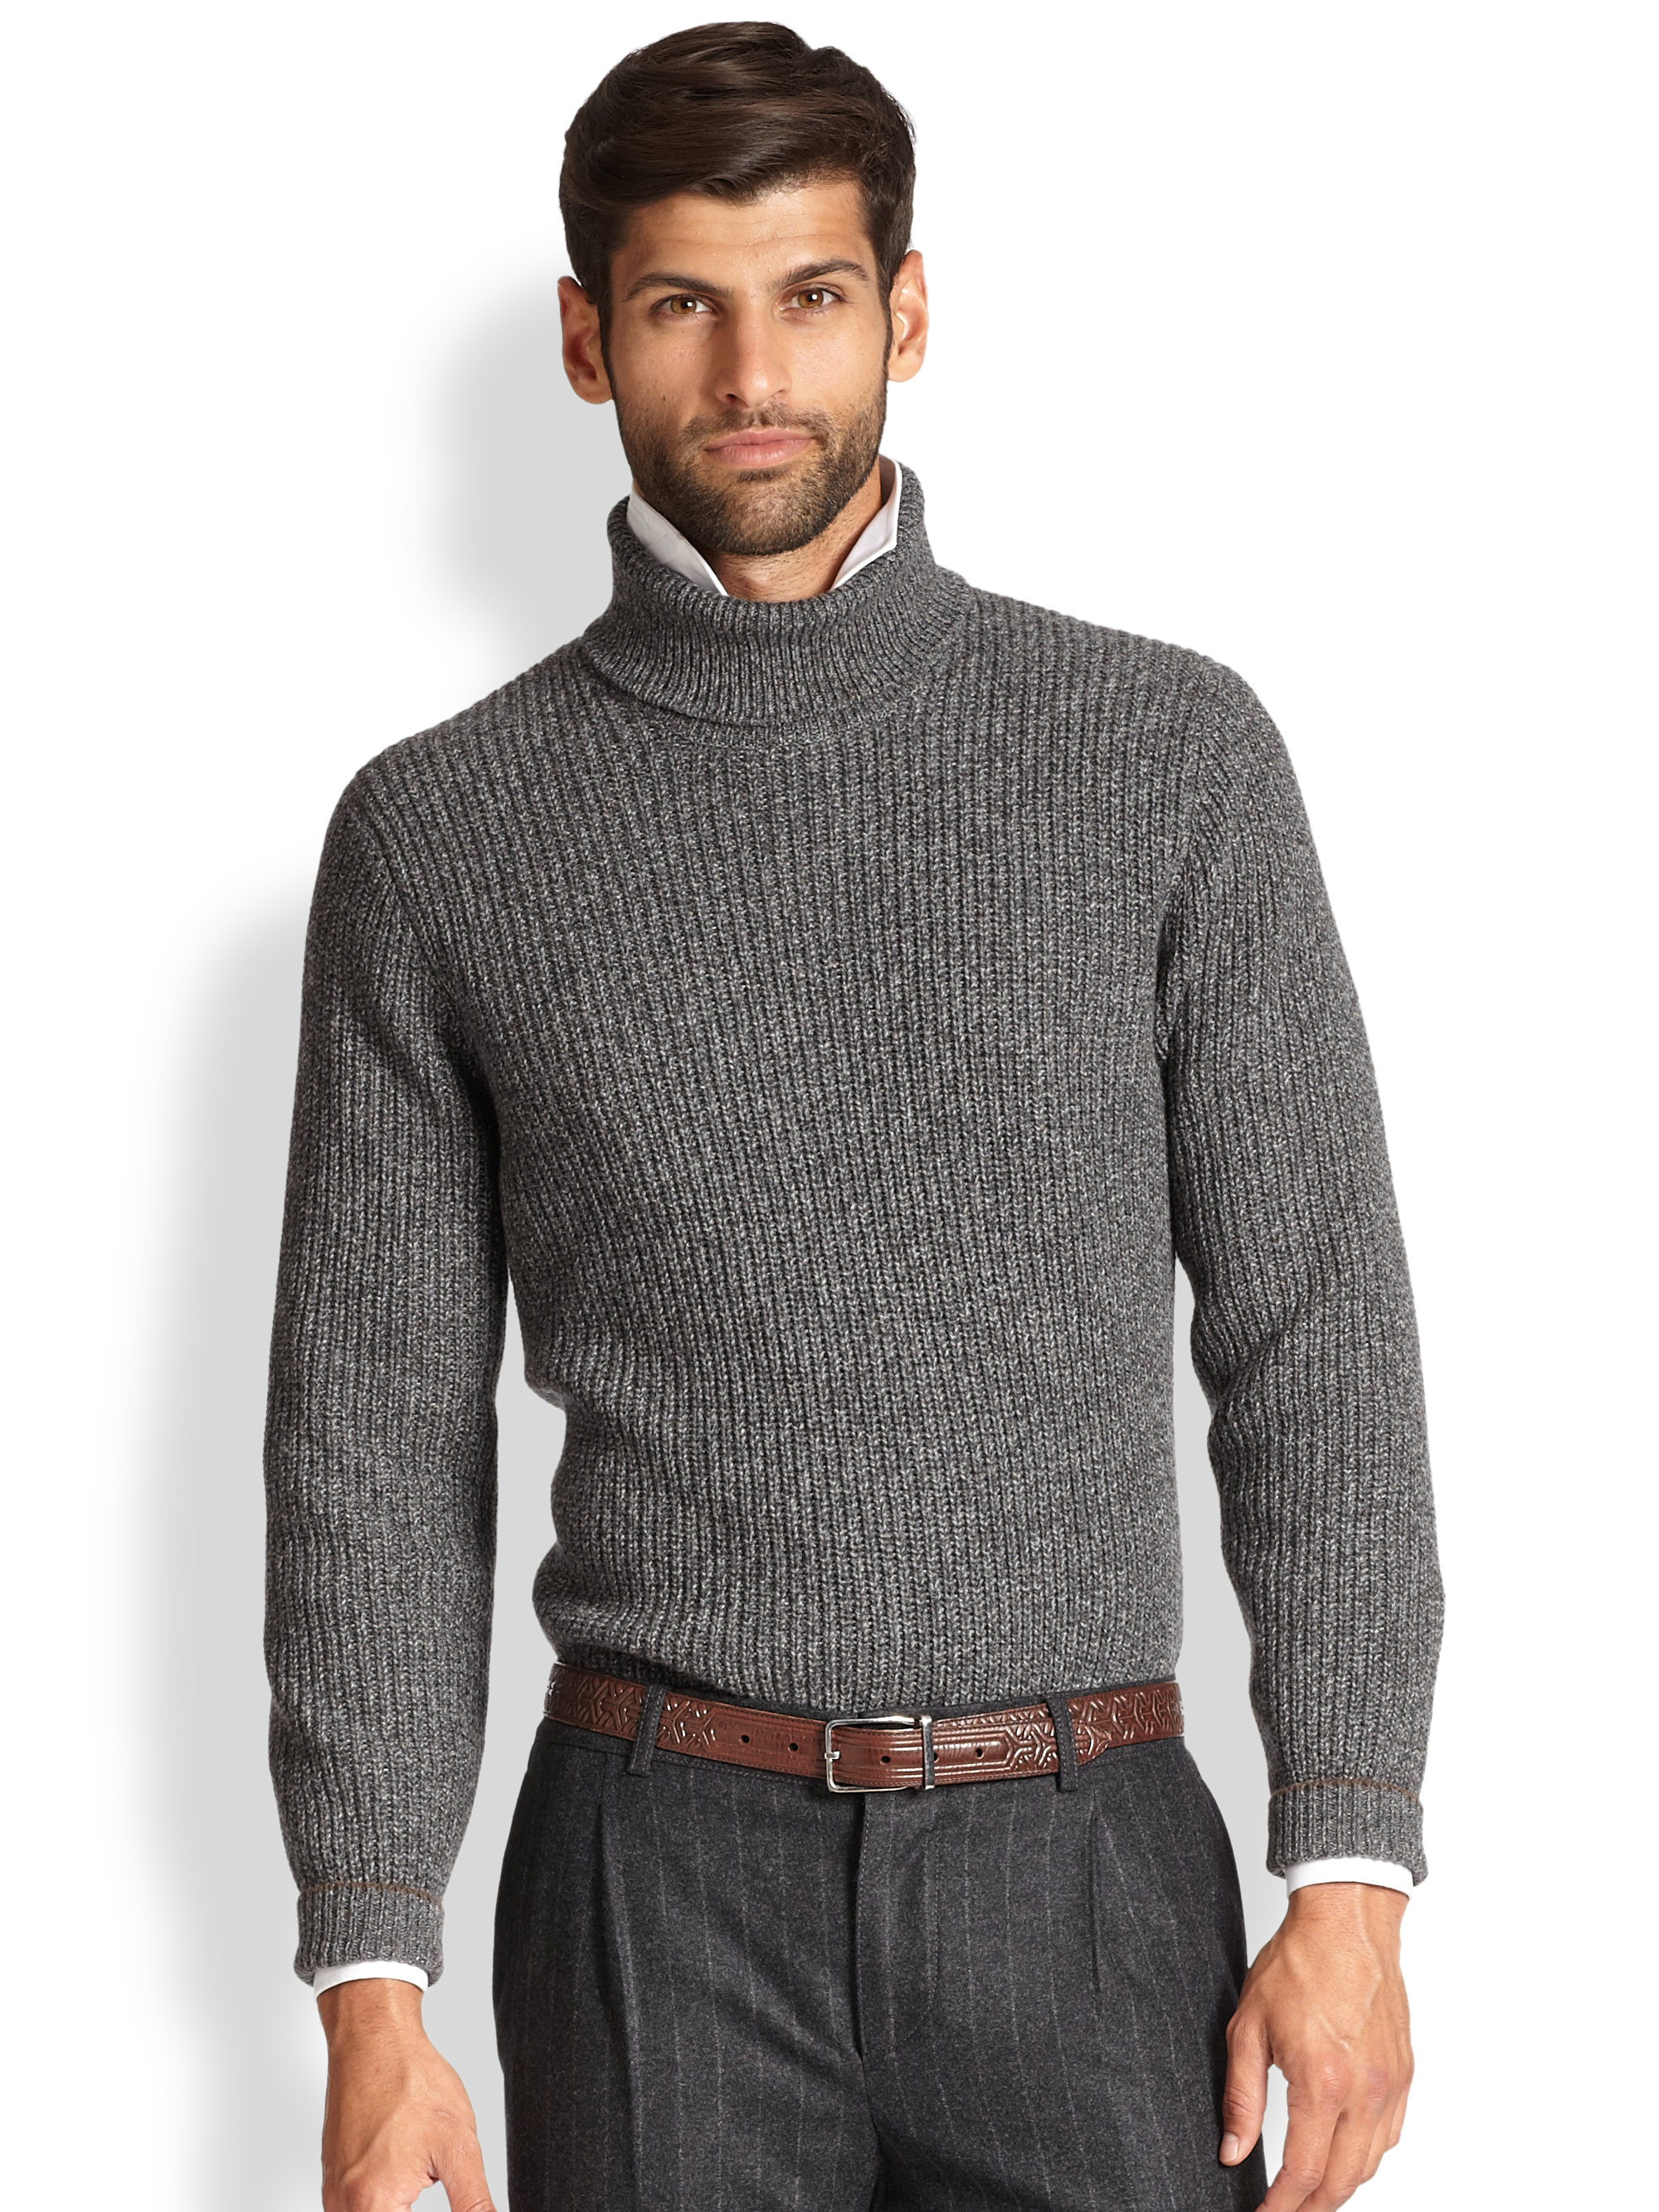 Turtleneck Sweater Men - Sweater Tunic